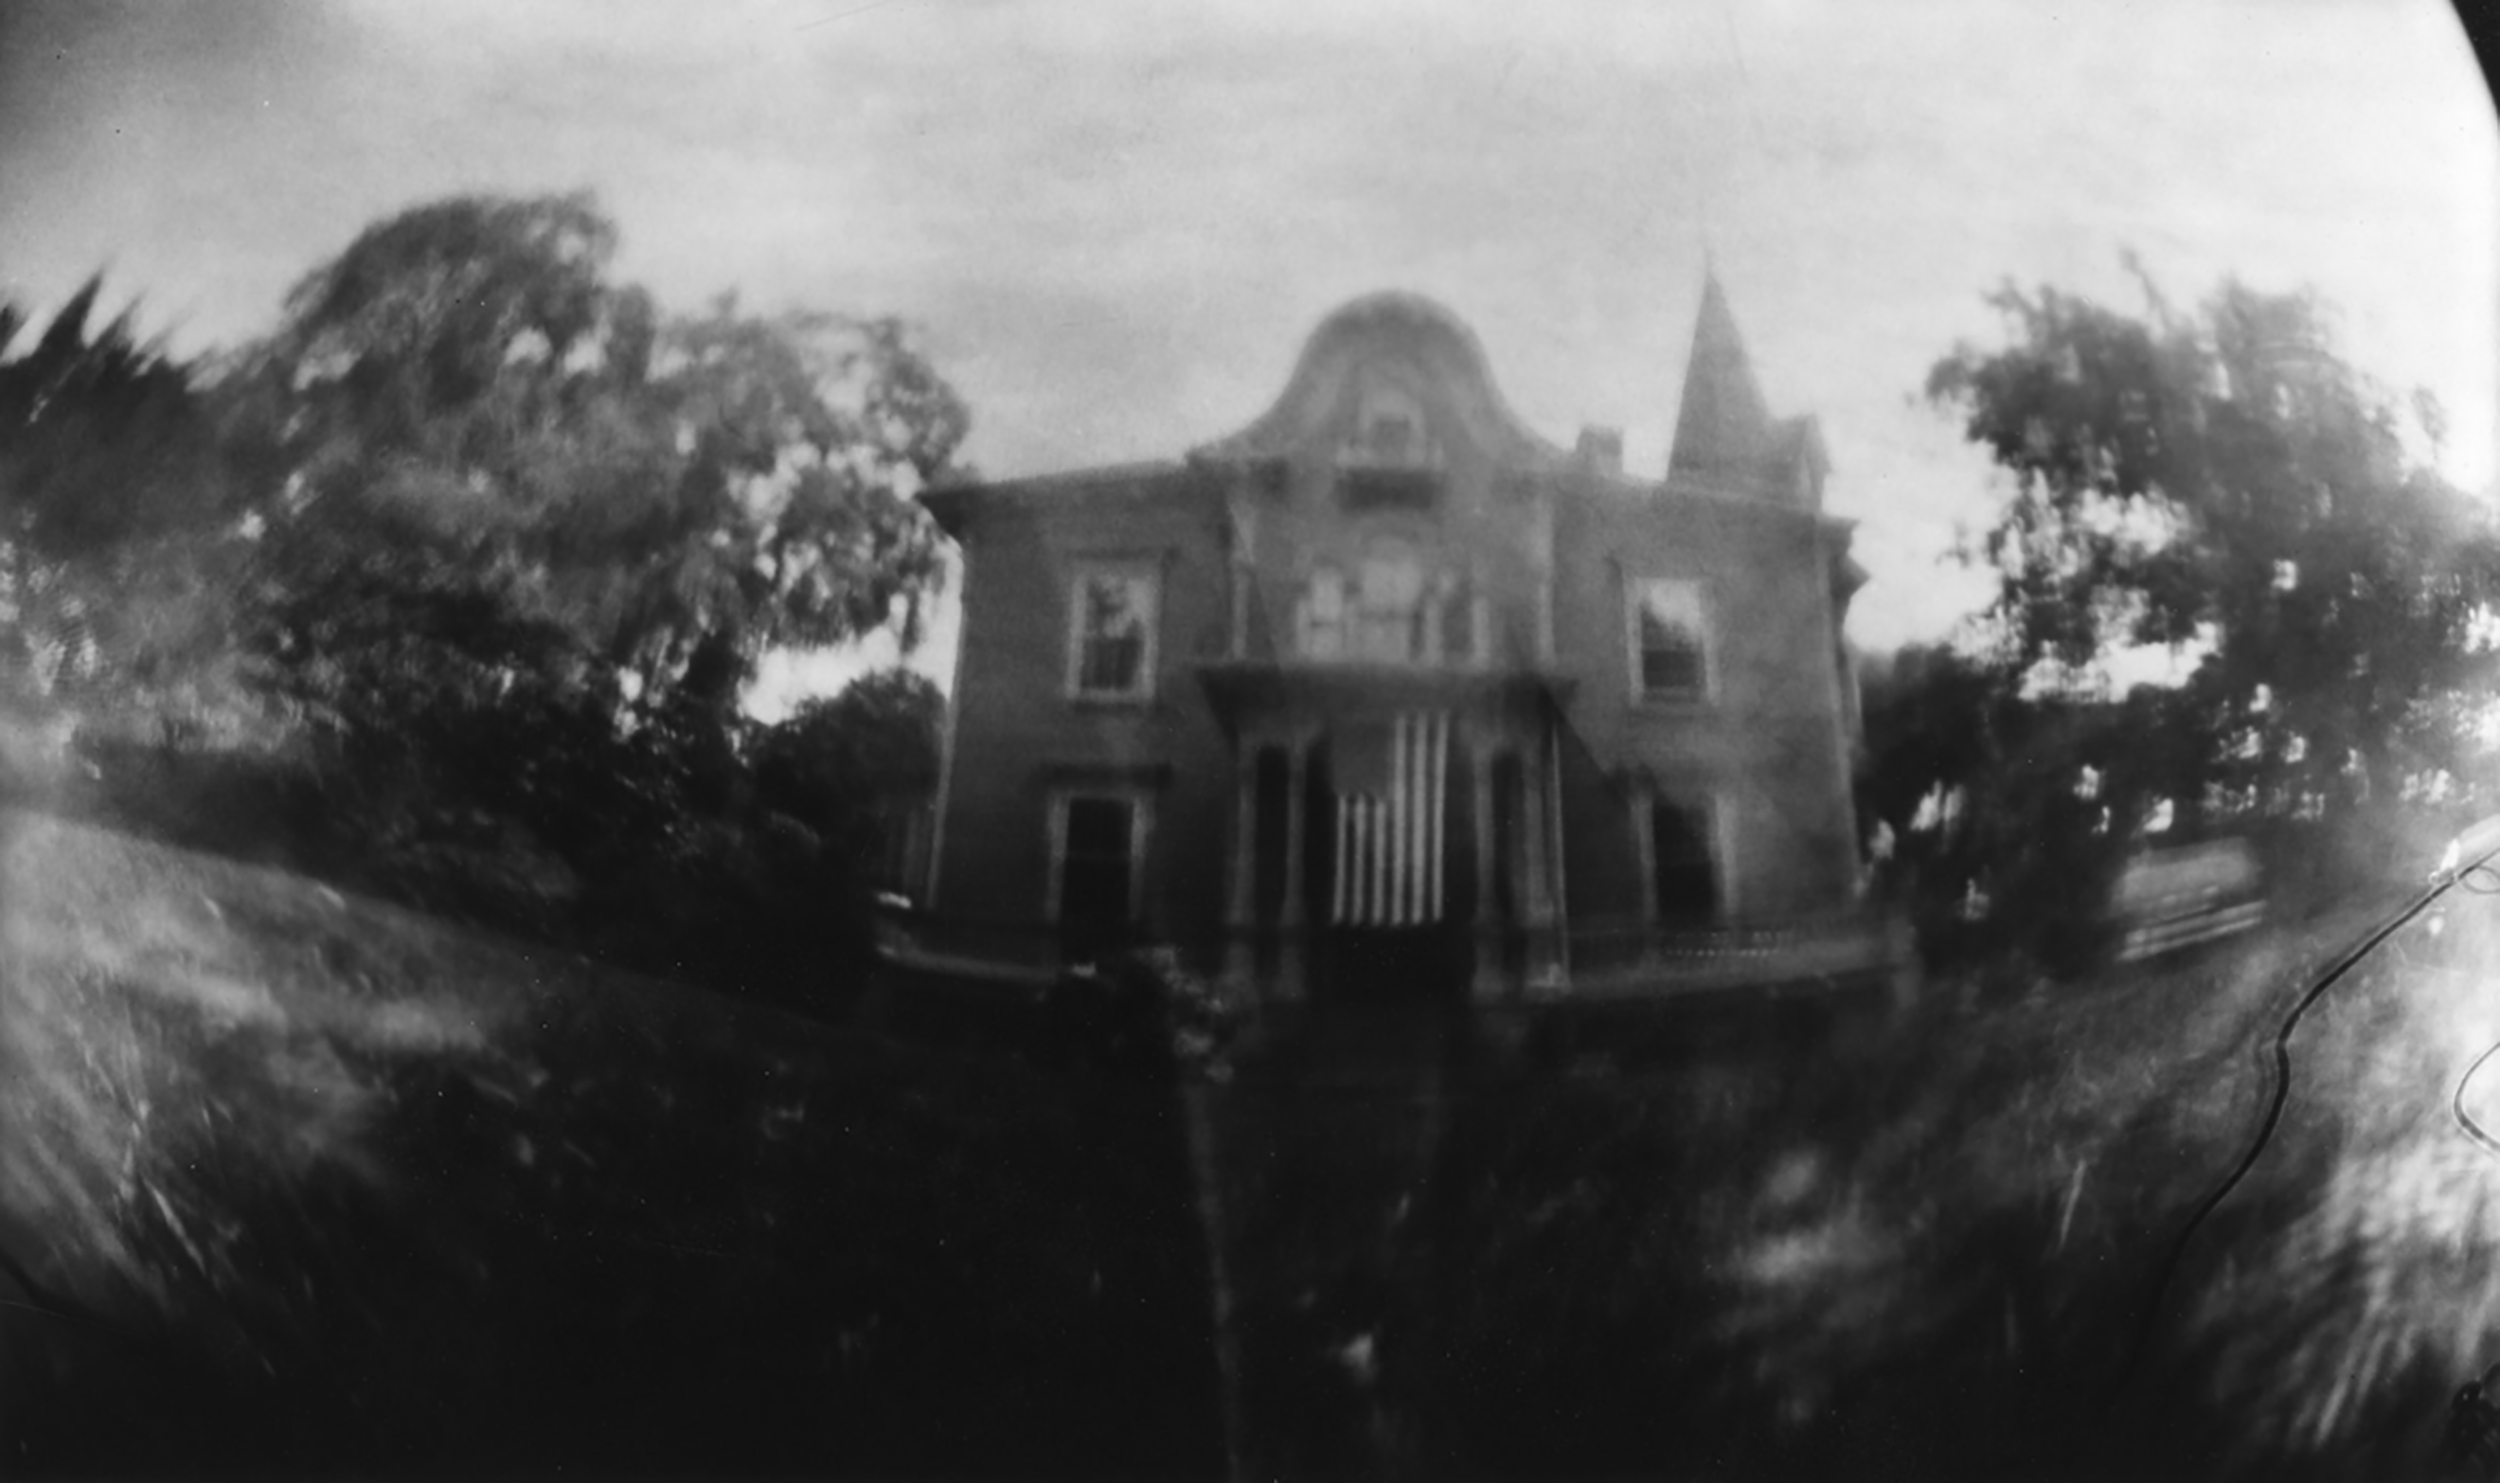 JU's house and residence, Bristol, RI. Tin can pinhole camera photograph by Amy Sanderson. 4th of July 1991